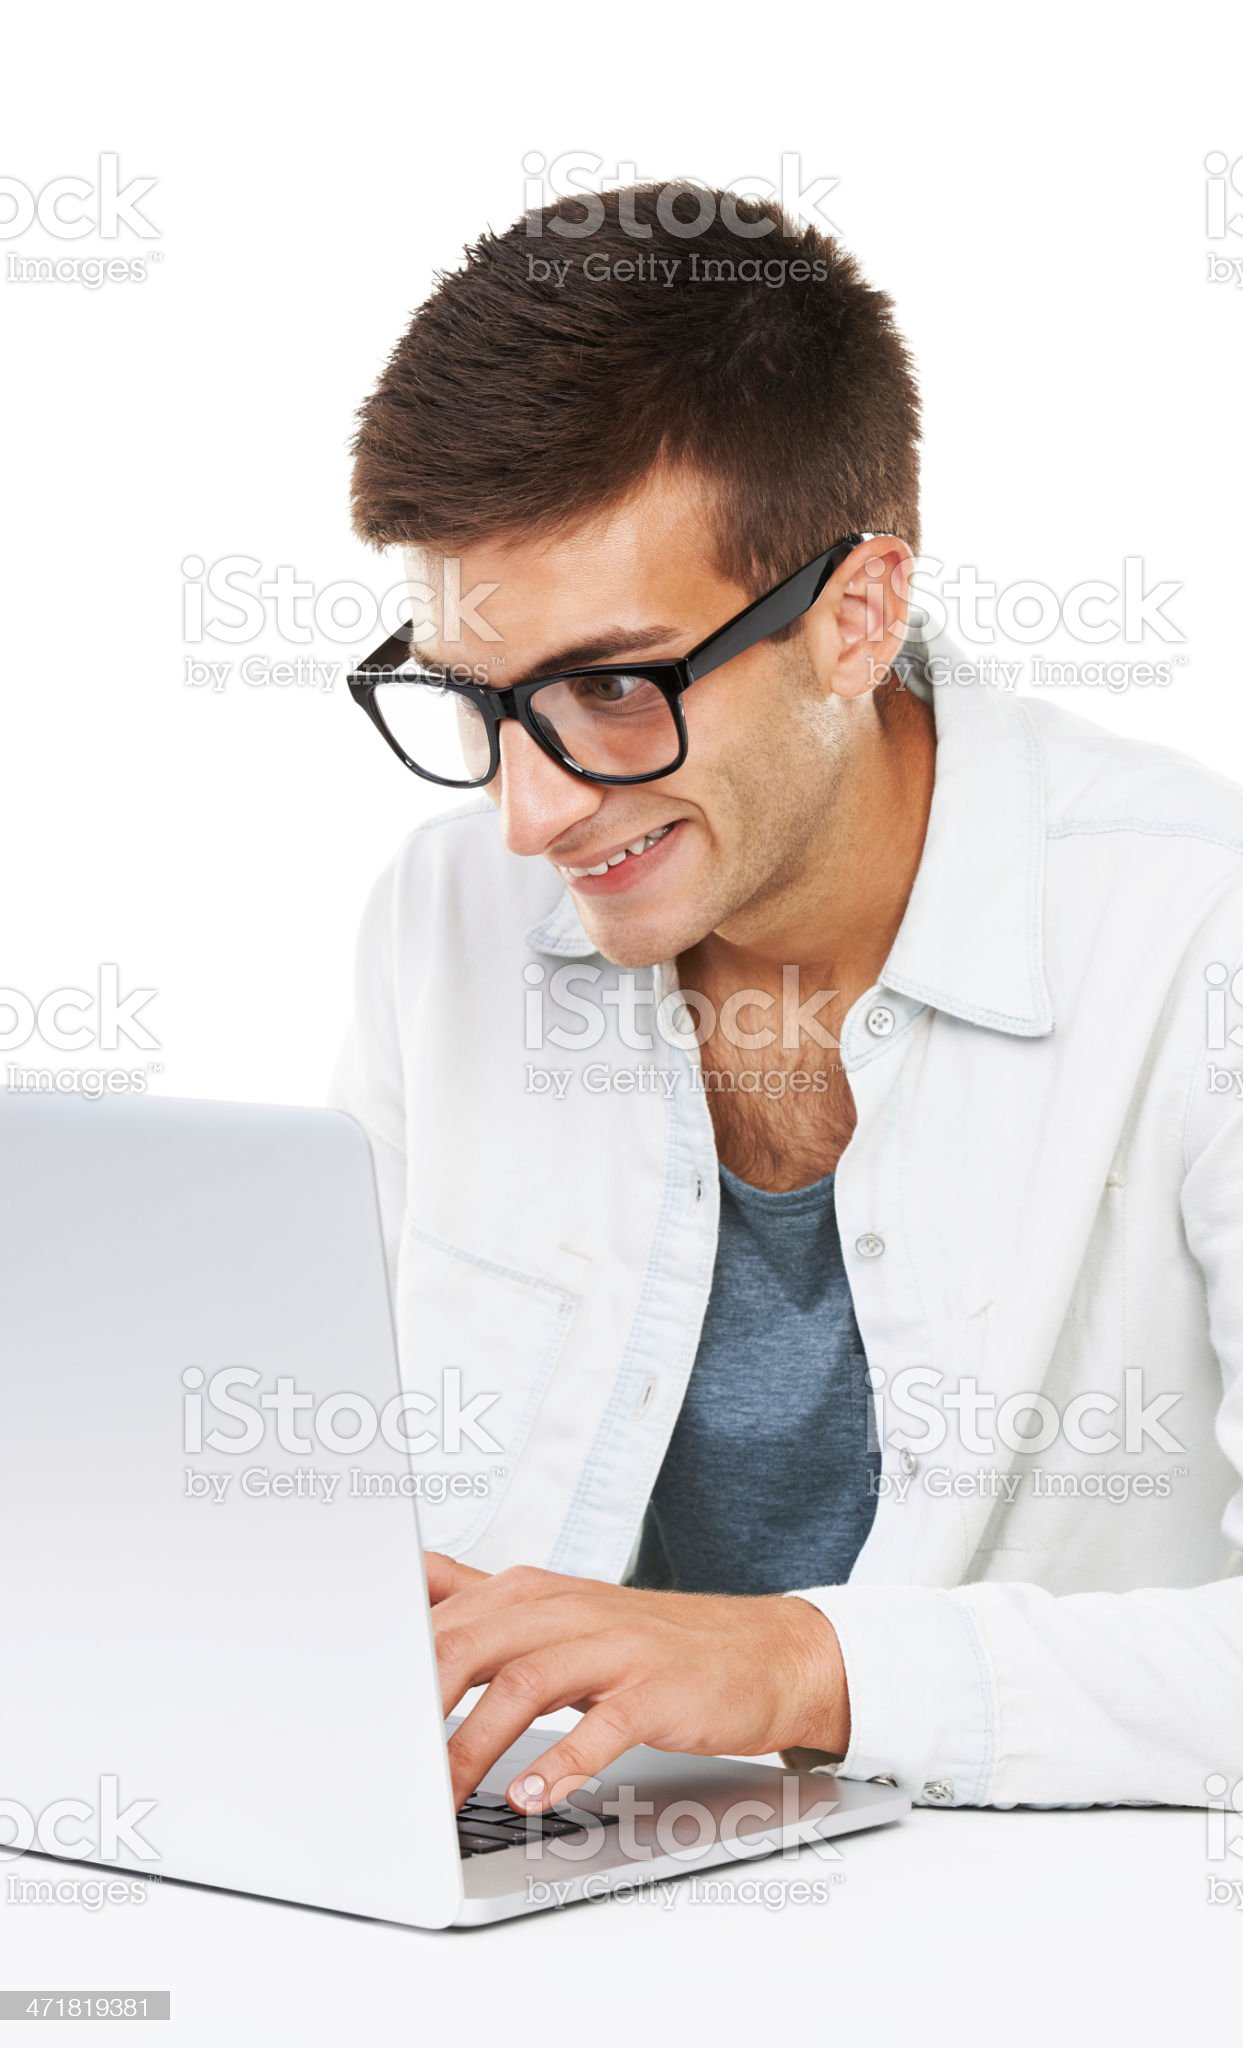 Excited about my new laptop royalty-free stock photo